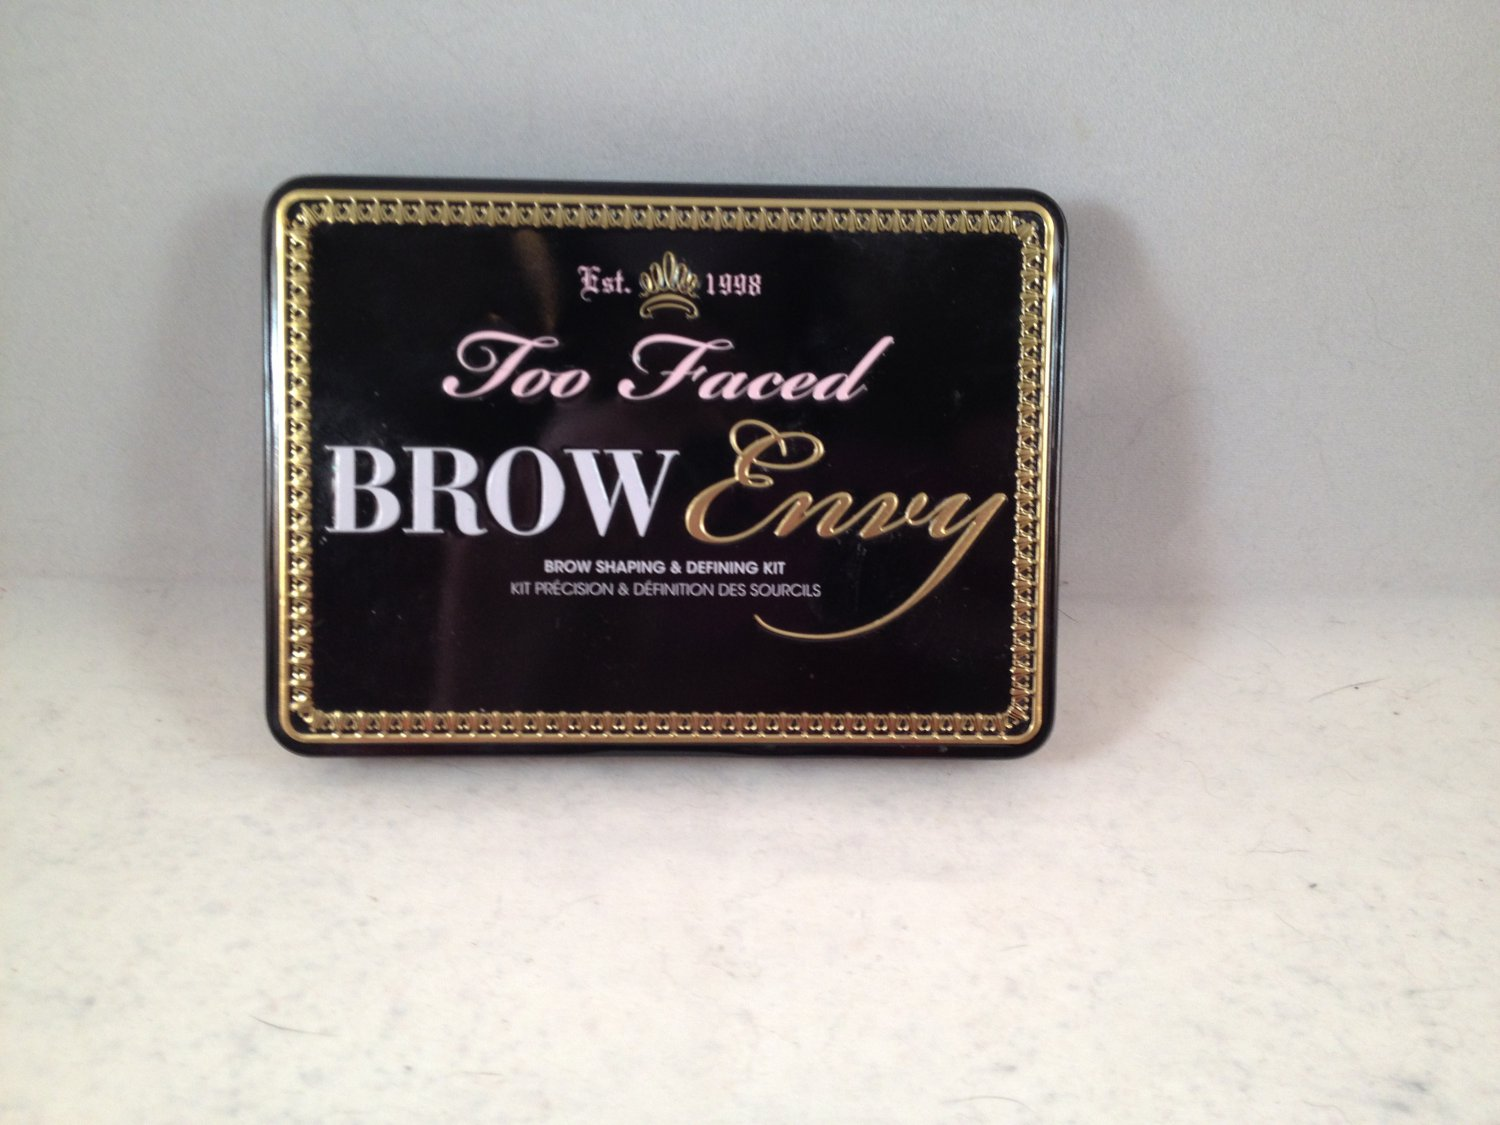 Too Faced Brow Envy Brow Shaping & Defining Kit eyebrow palette eye